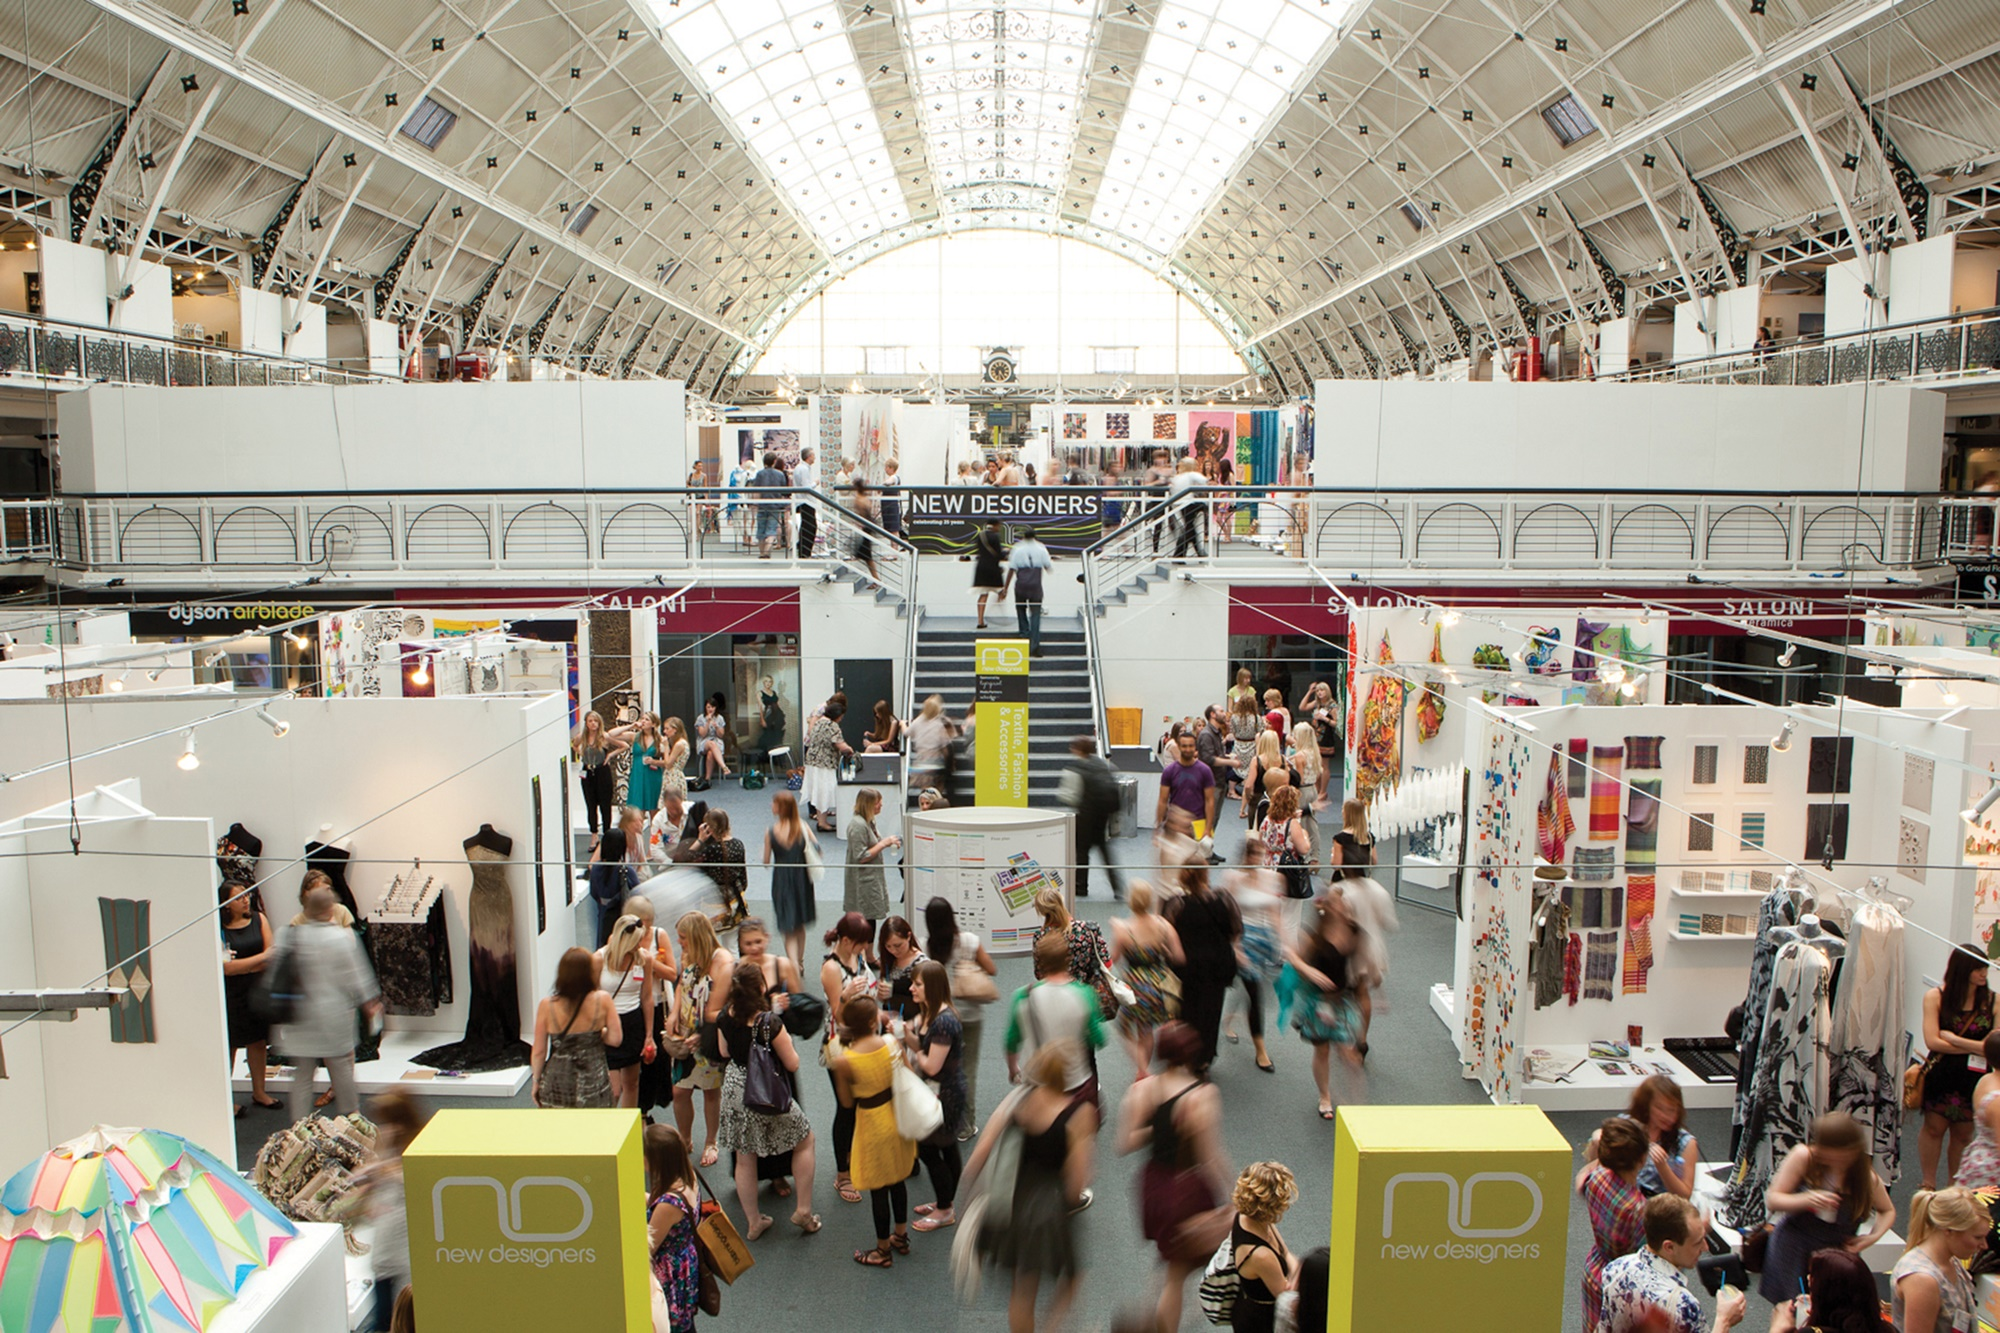 You Don't Want To Miss This New Designers Event In UK new designers event You Don't Want To Miss This New Designers Event In UK You Don   t Want To Miss This New Designers Event In UK